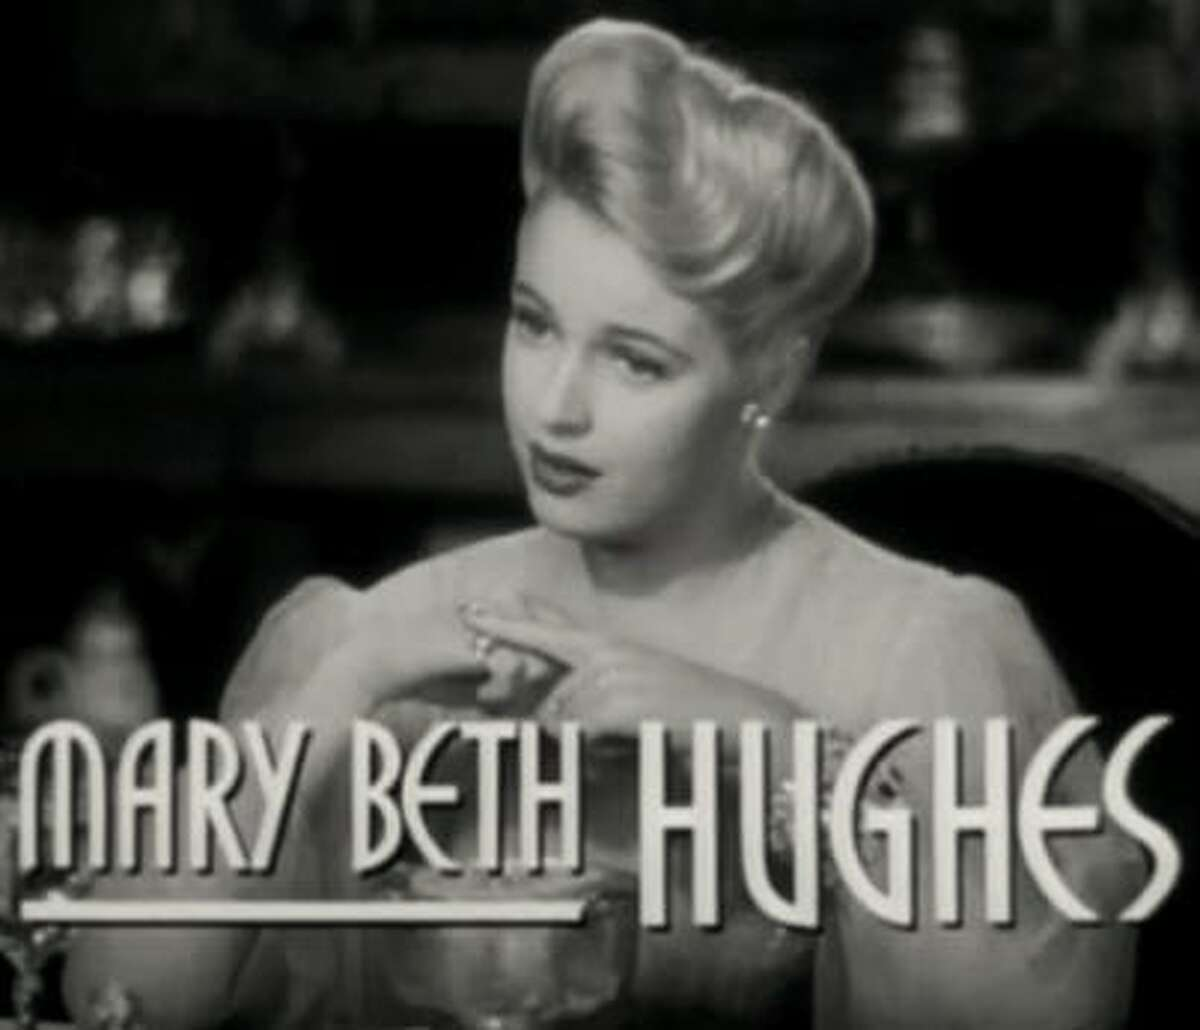 """Mary Beth Hughes:Hughes was born in Alton and moved away after her parents divorced when she was a baby. But, she's a River Bend native nonetheless. Hughes made it big starring in B-movies and at one point had arranged dates with several Hollywood legends like Jimmy Stewart and Mickey Rooney. She starred alongside Henry Fonda in the best picture nominated film, """"The Ox-Bow Incident."""""""